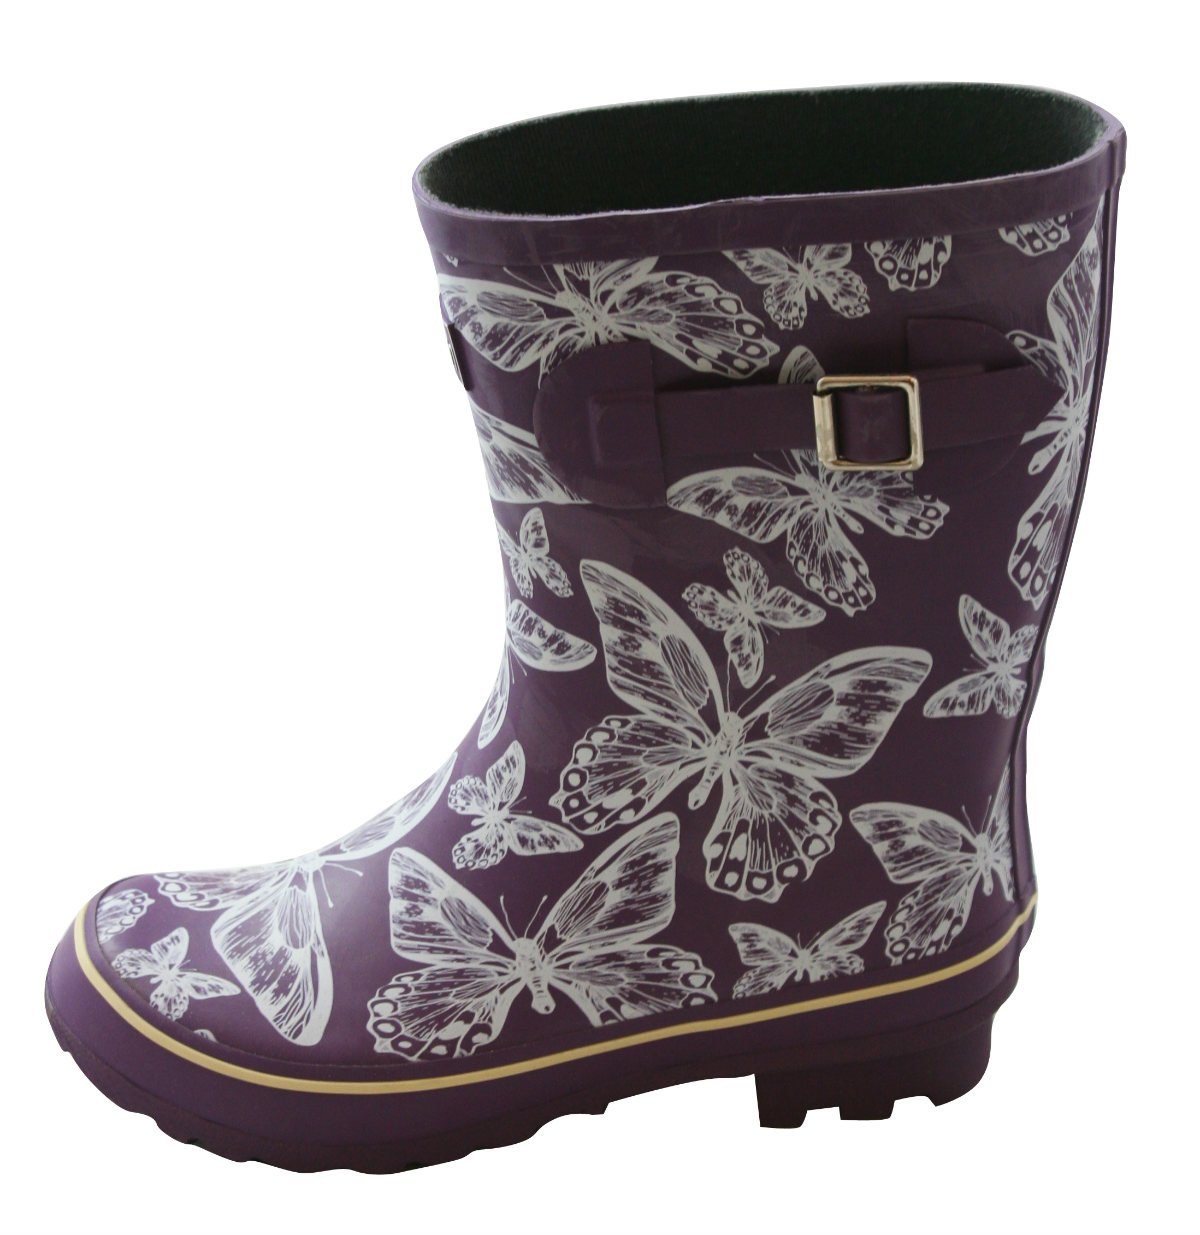 Jileon Half Height Rain Boots for Women - Wide in The Foot and Ankle - Durable All Weather Boots B01EI1D4AO 10 E (US)|Purple